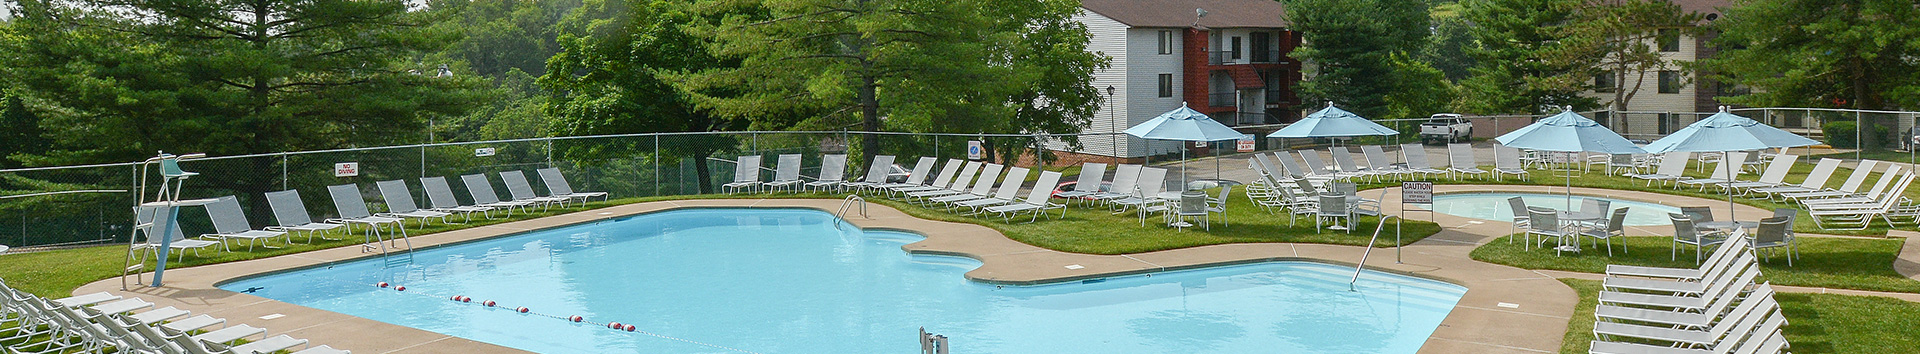 Swimming Pool of Roxalana Hills Apartments at Manor Communities, Charleston/West Virginia